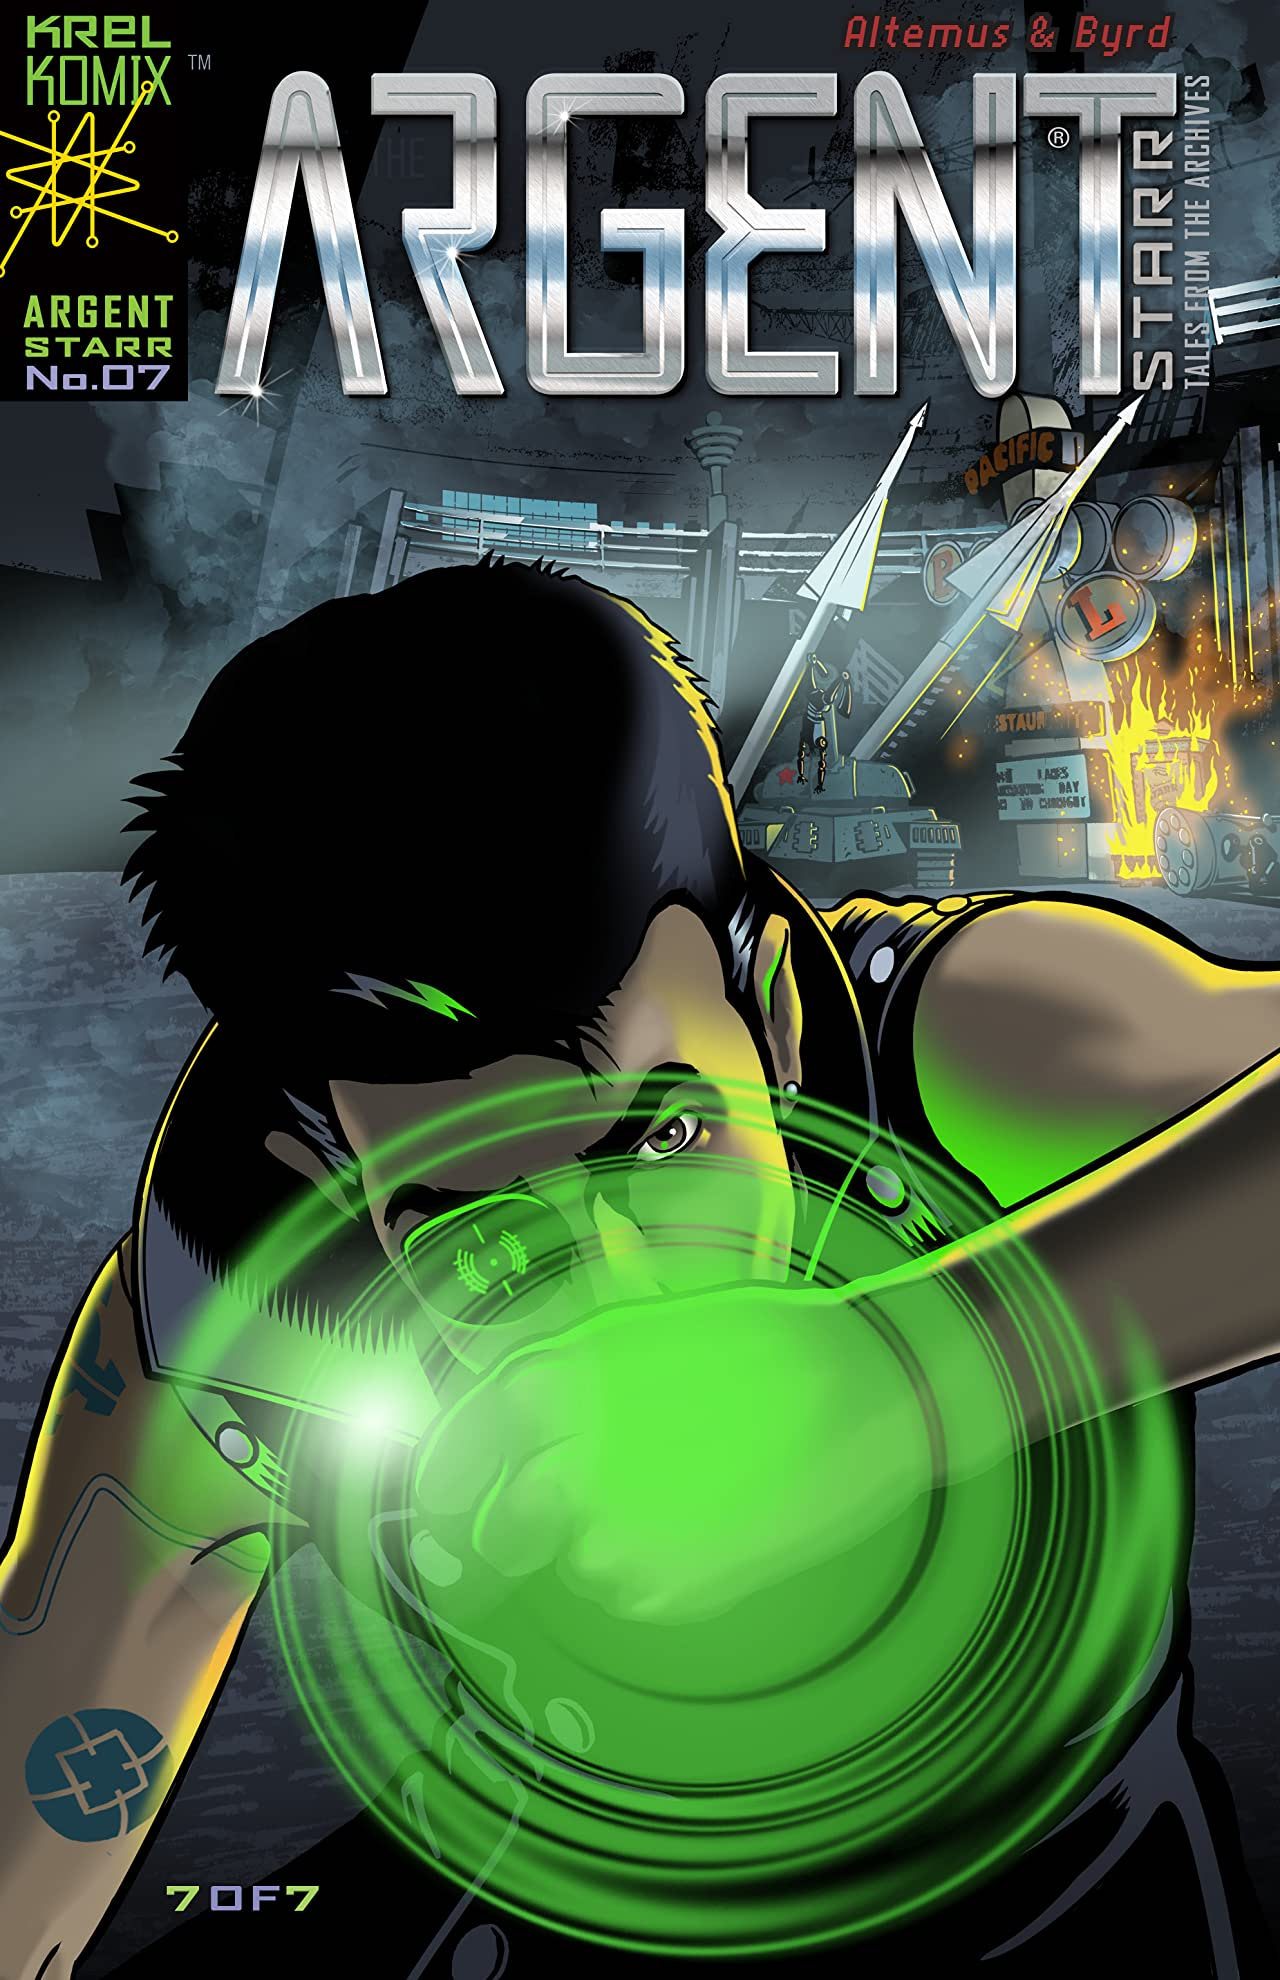 Argent Starr: Tales From the Archives #7